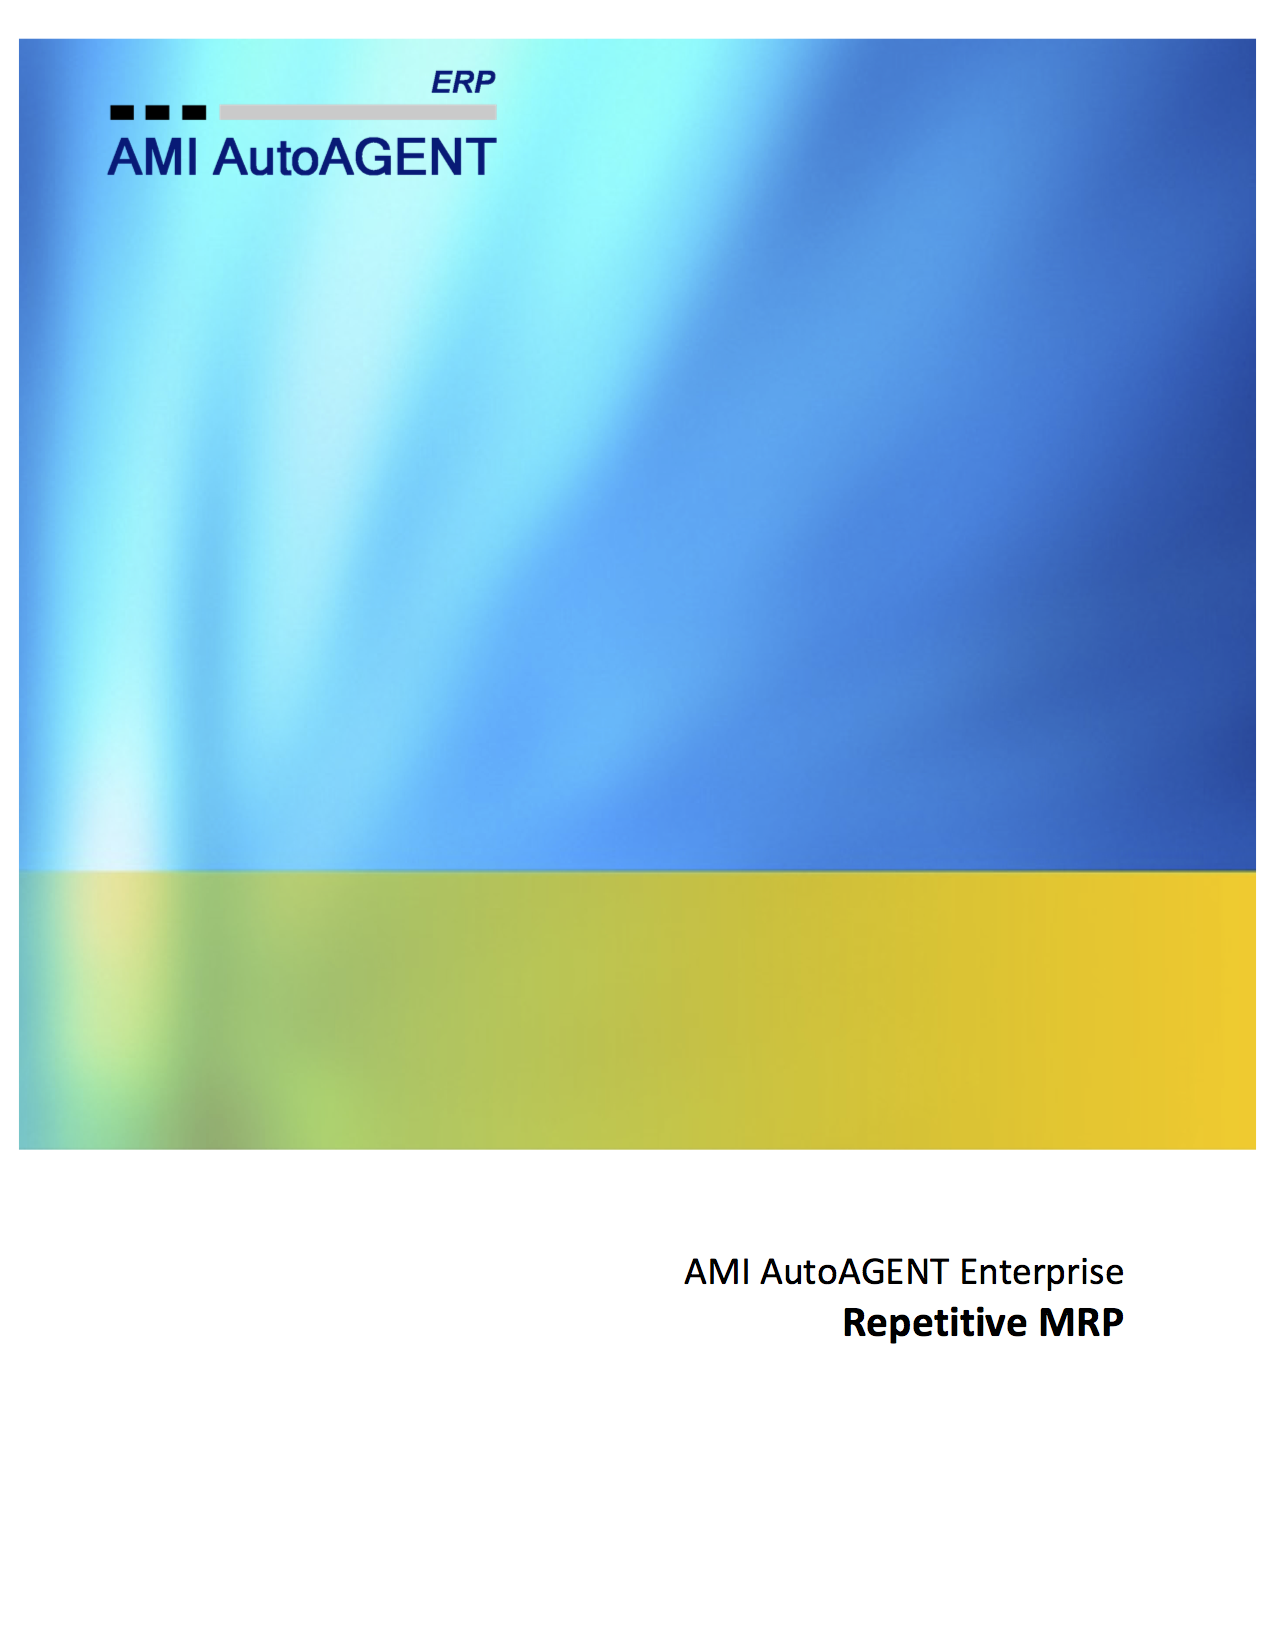 Repetitive MRP User Guide